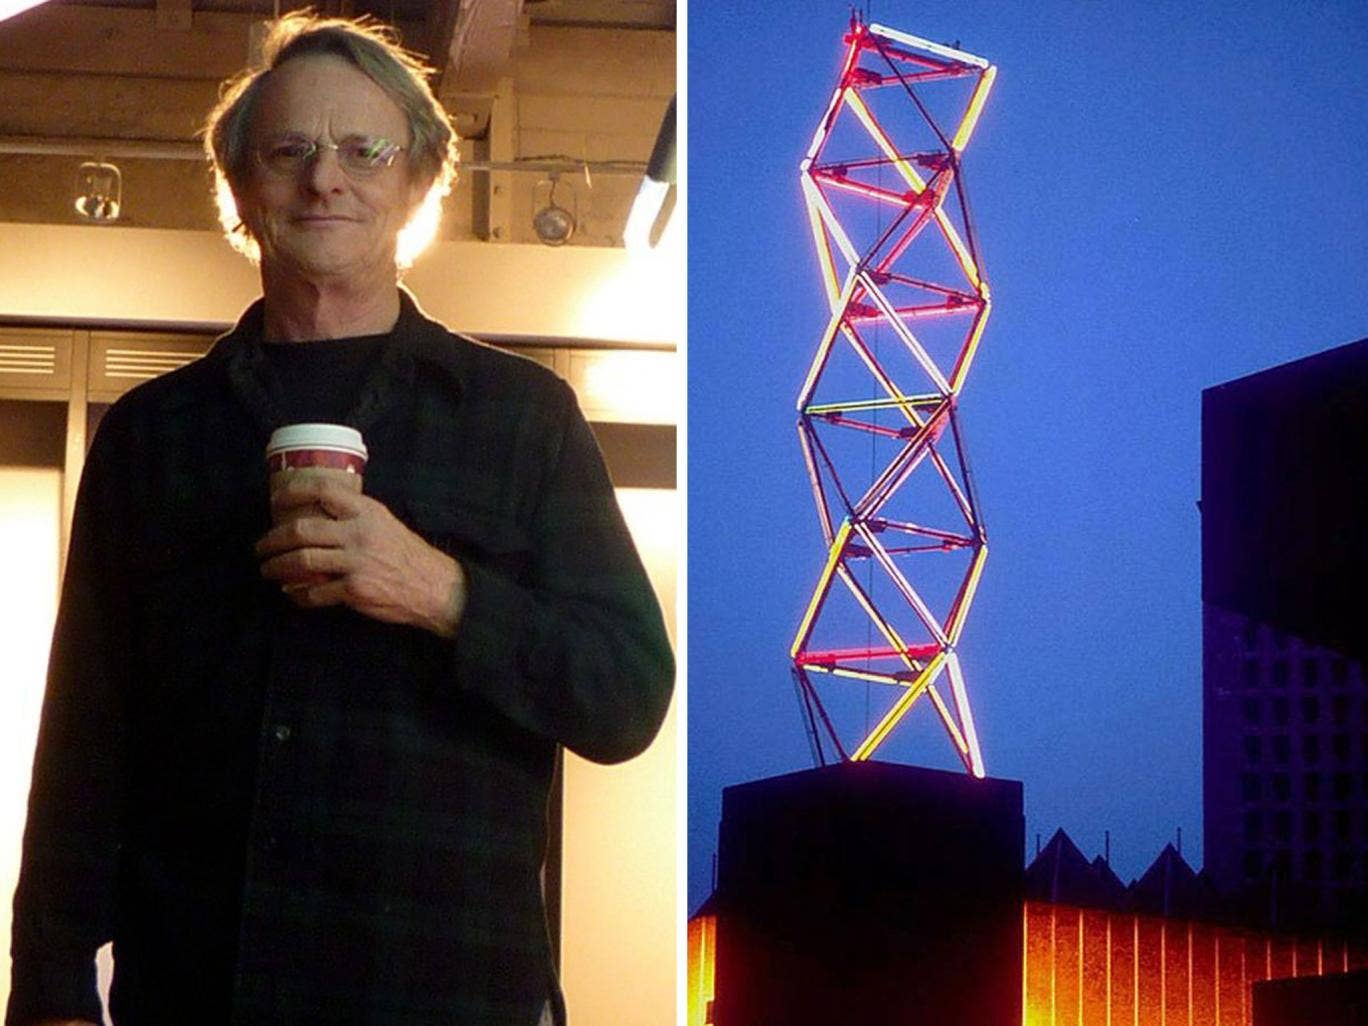 Philip Vaughan has accused the Hayward gallery's executives of going back on plans to restore his Neon Tower work, right